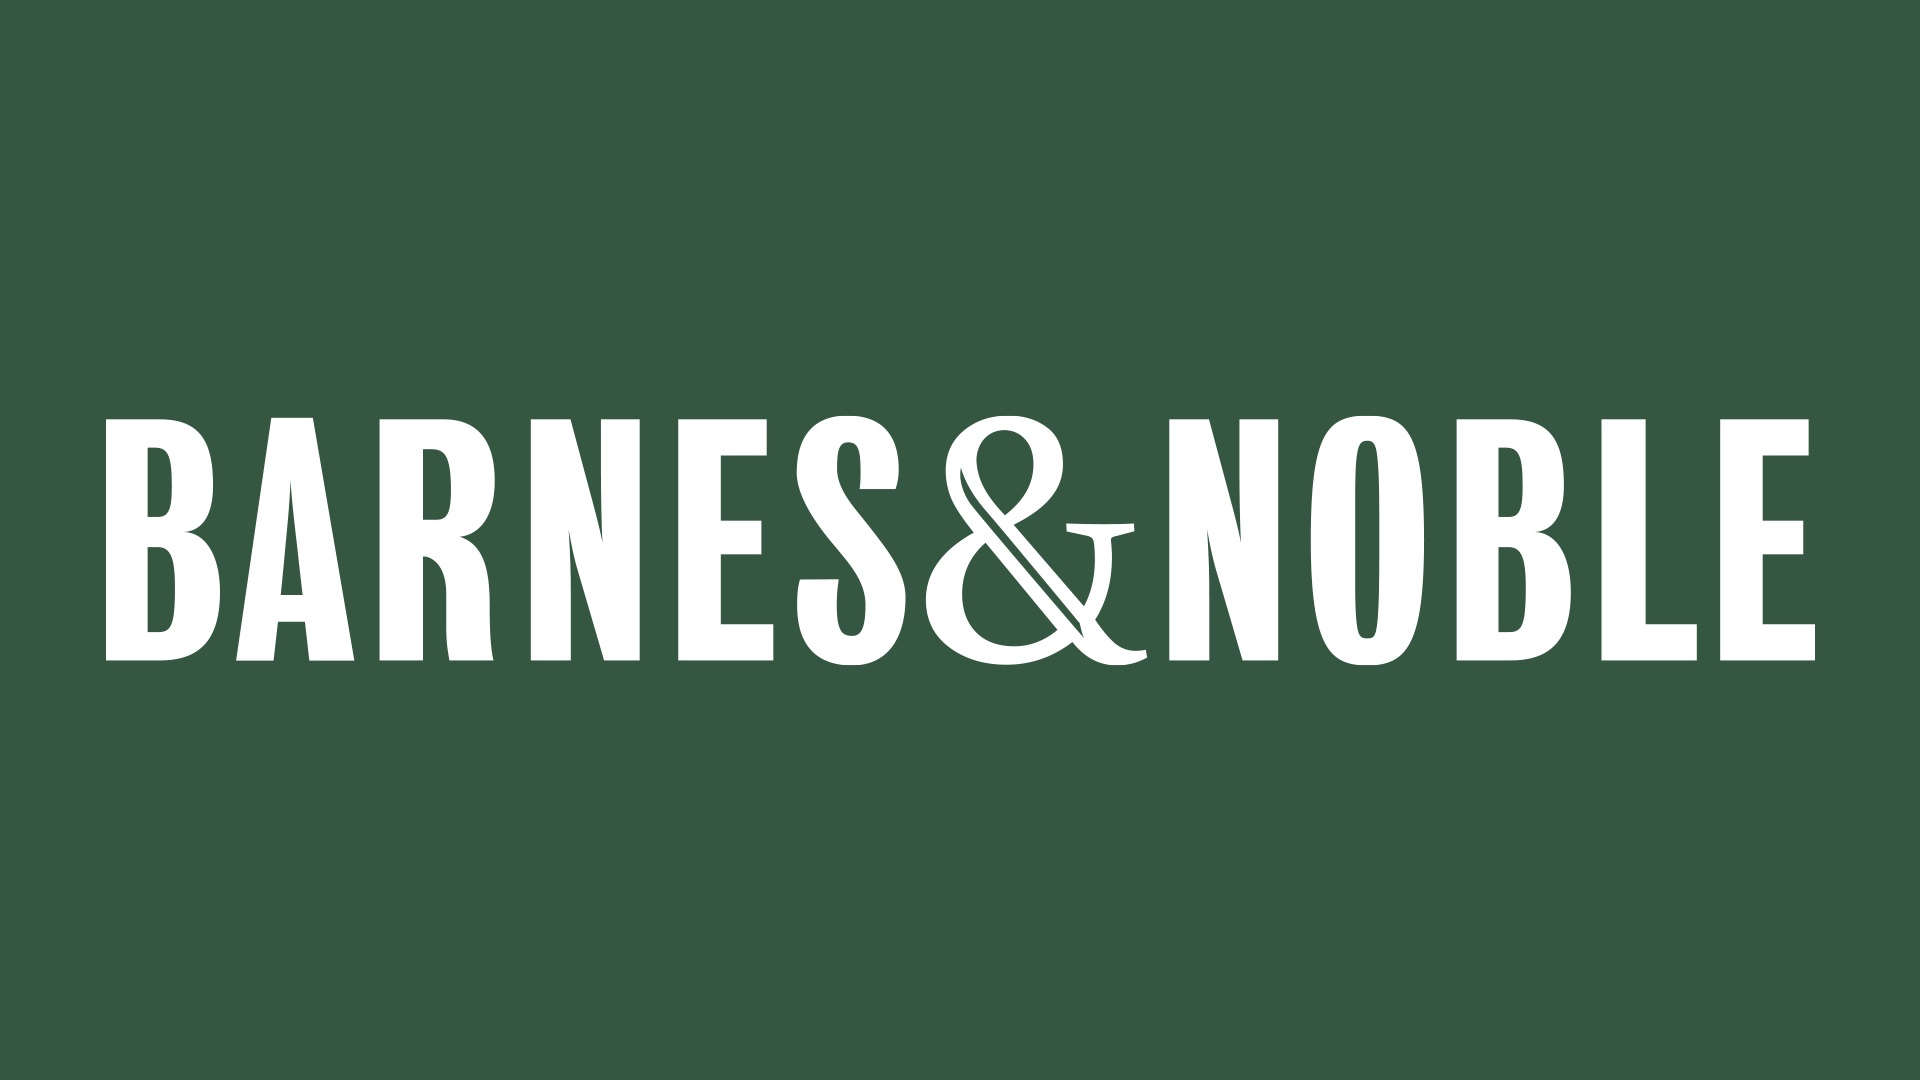 Barnes & Noble E-Gift Card 20% off $100 Card Gift Card Image